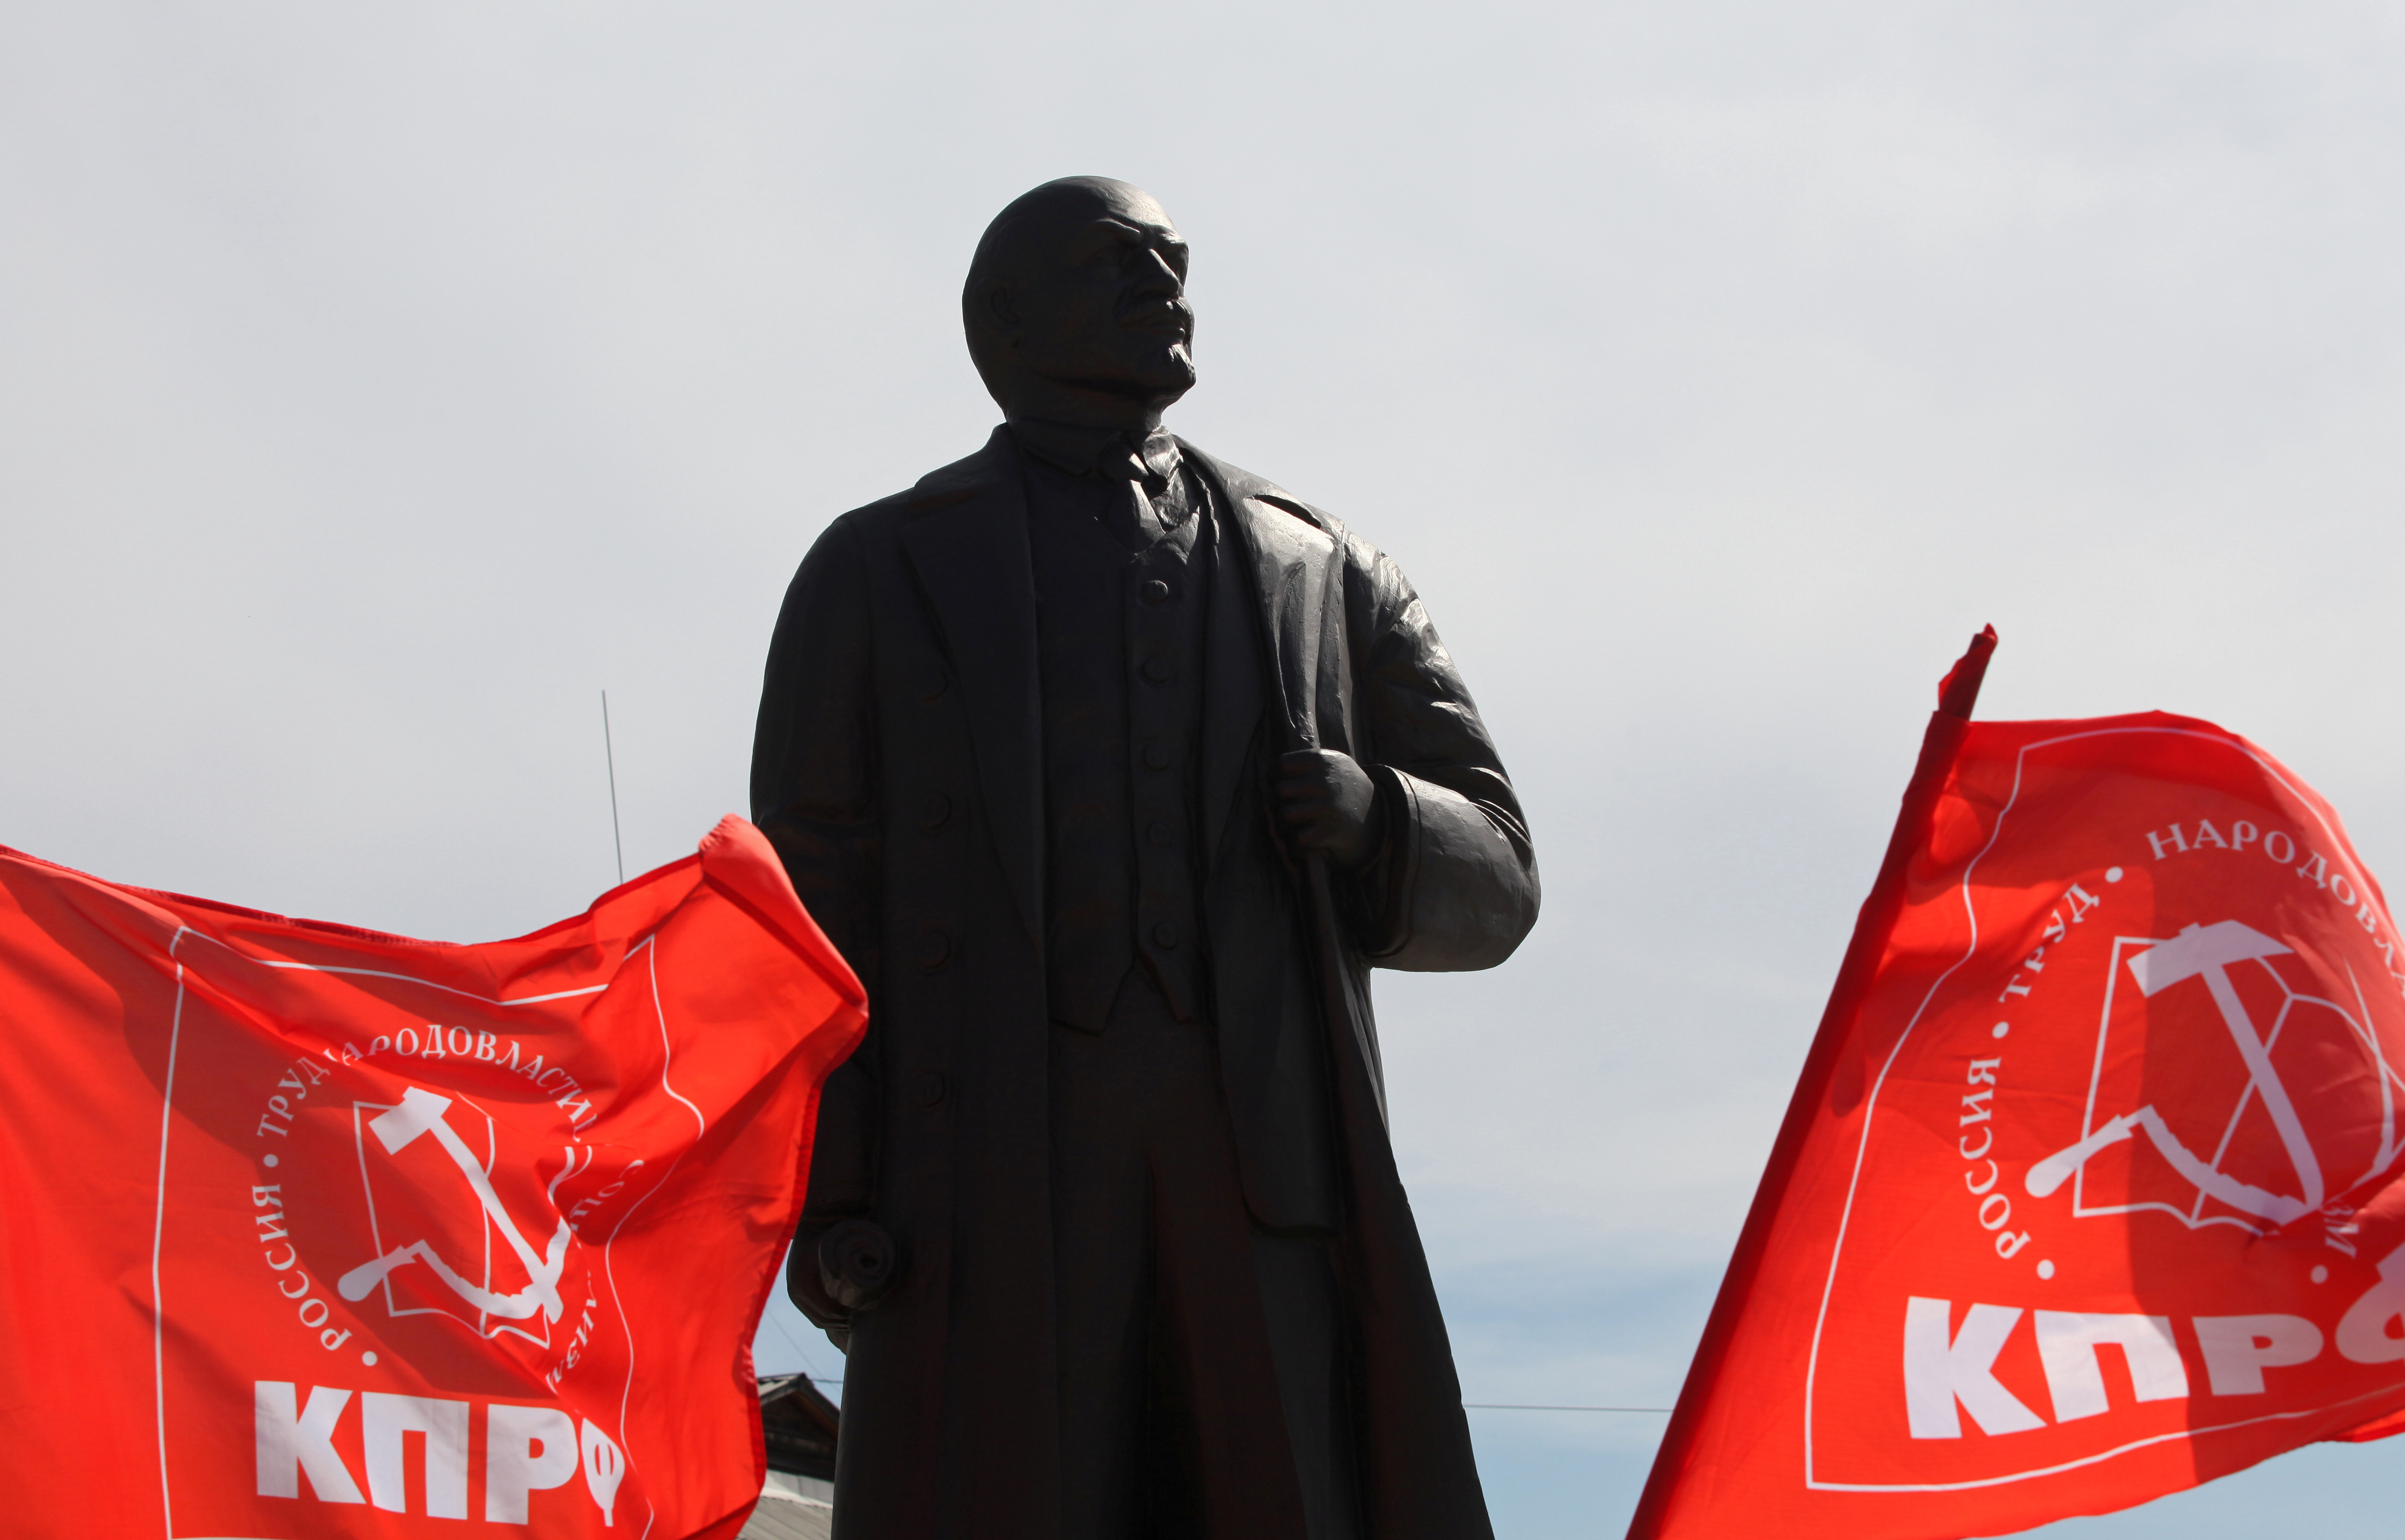 A view shows a monument to Soviet state founder Vladimir Lenin during an unveiling ceremony on the day of the 150th anniversary of his birth, amid the coronavirus disease (COVID-19) outbreak, in the town of Sayansk in Irkutsk region, Russia April 22, 2020. Photo: Reuters